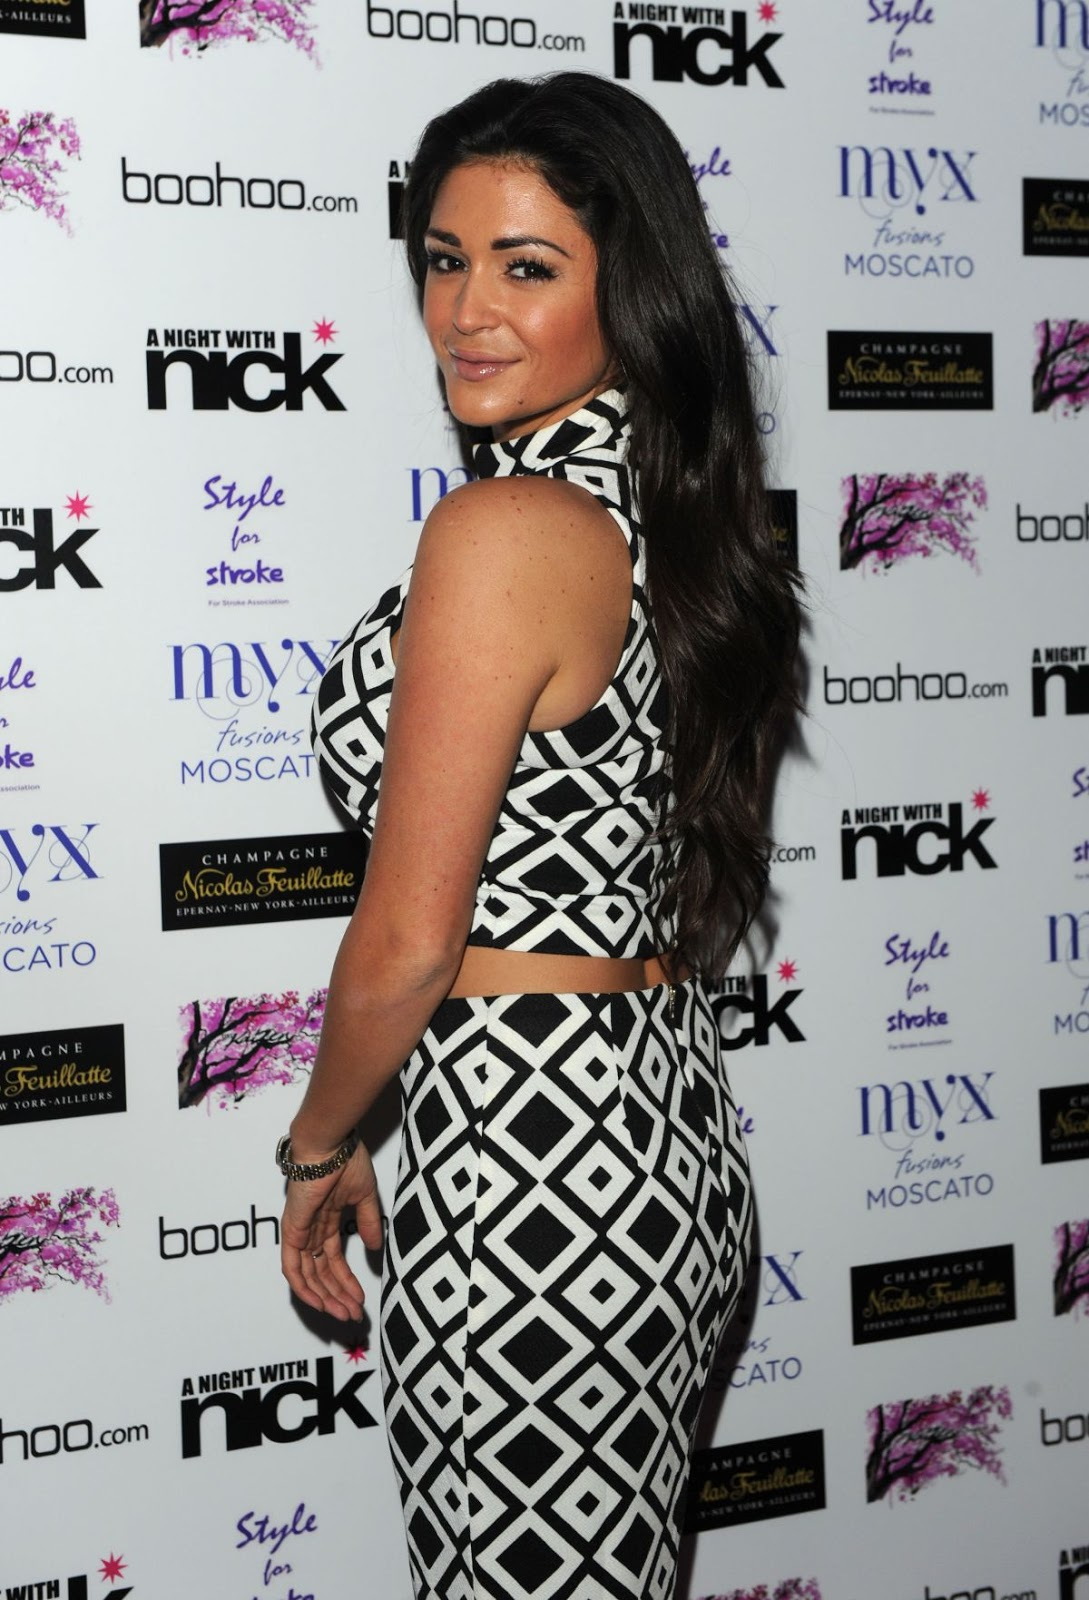 Photos of Casey Batchelor at Night with Nick in London